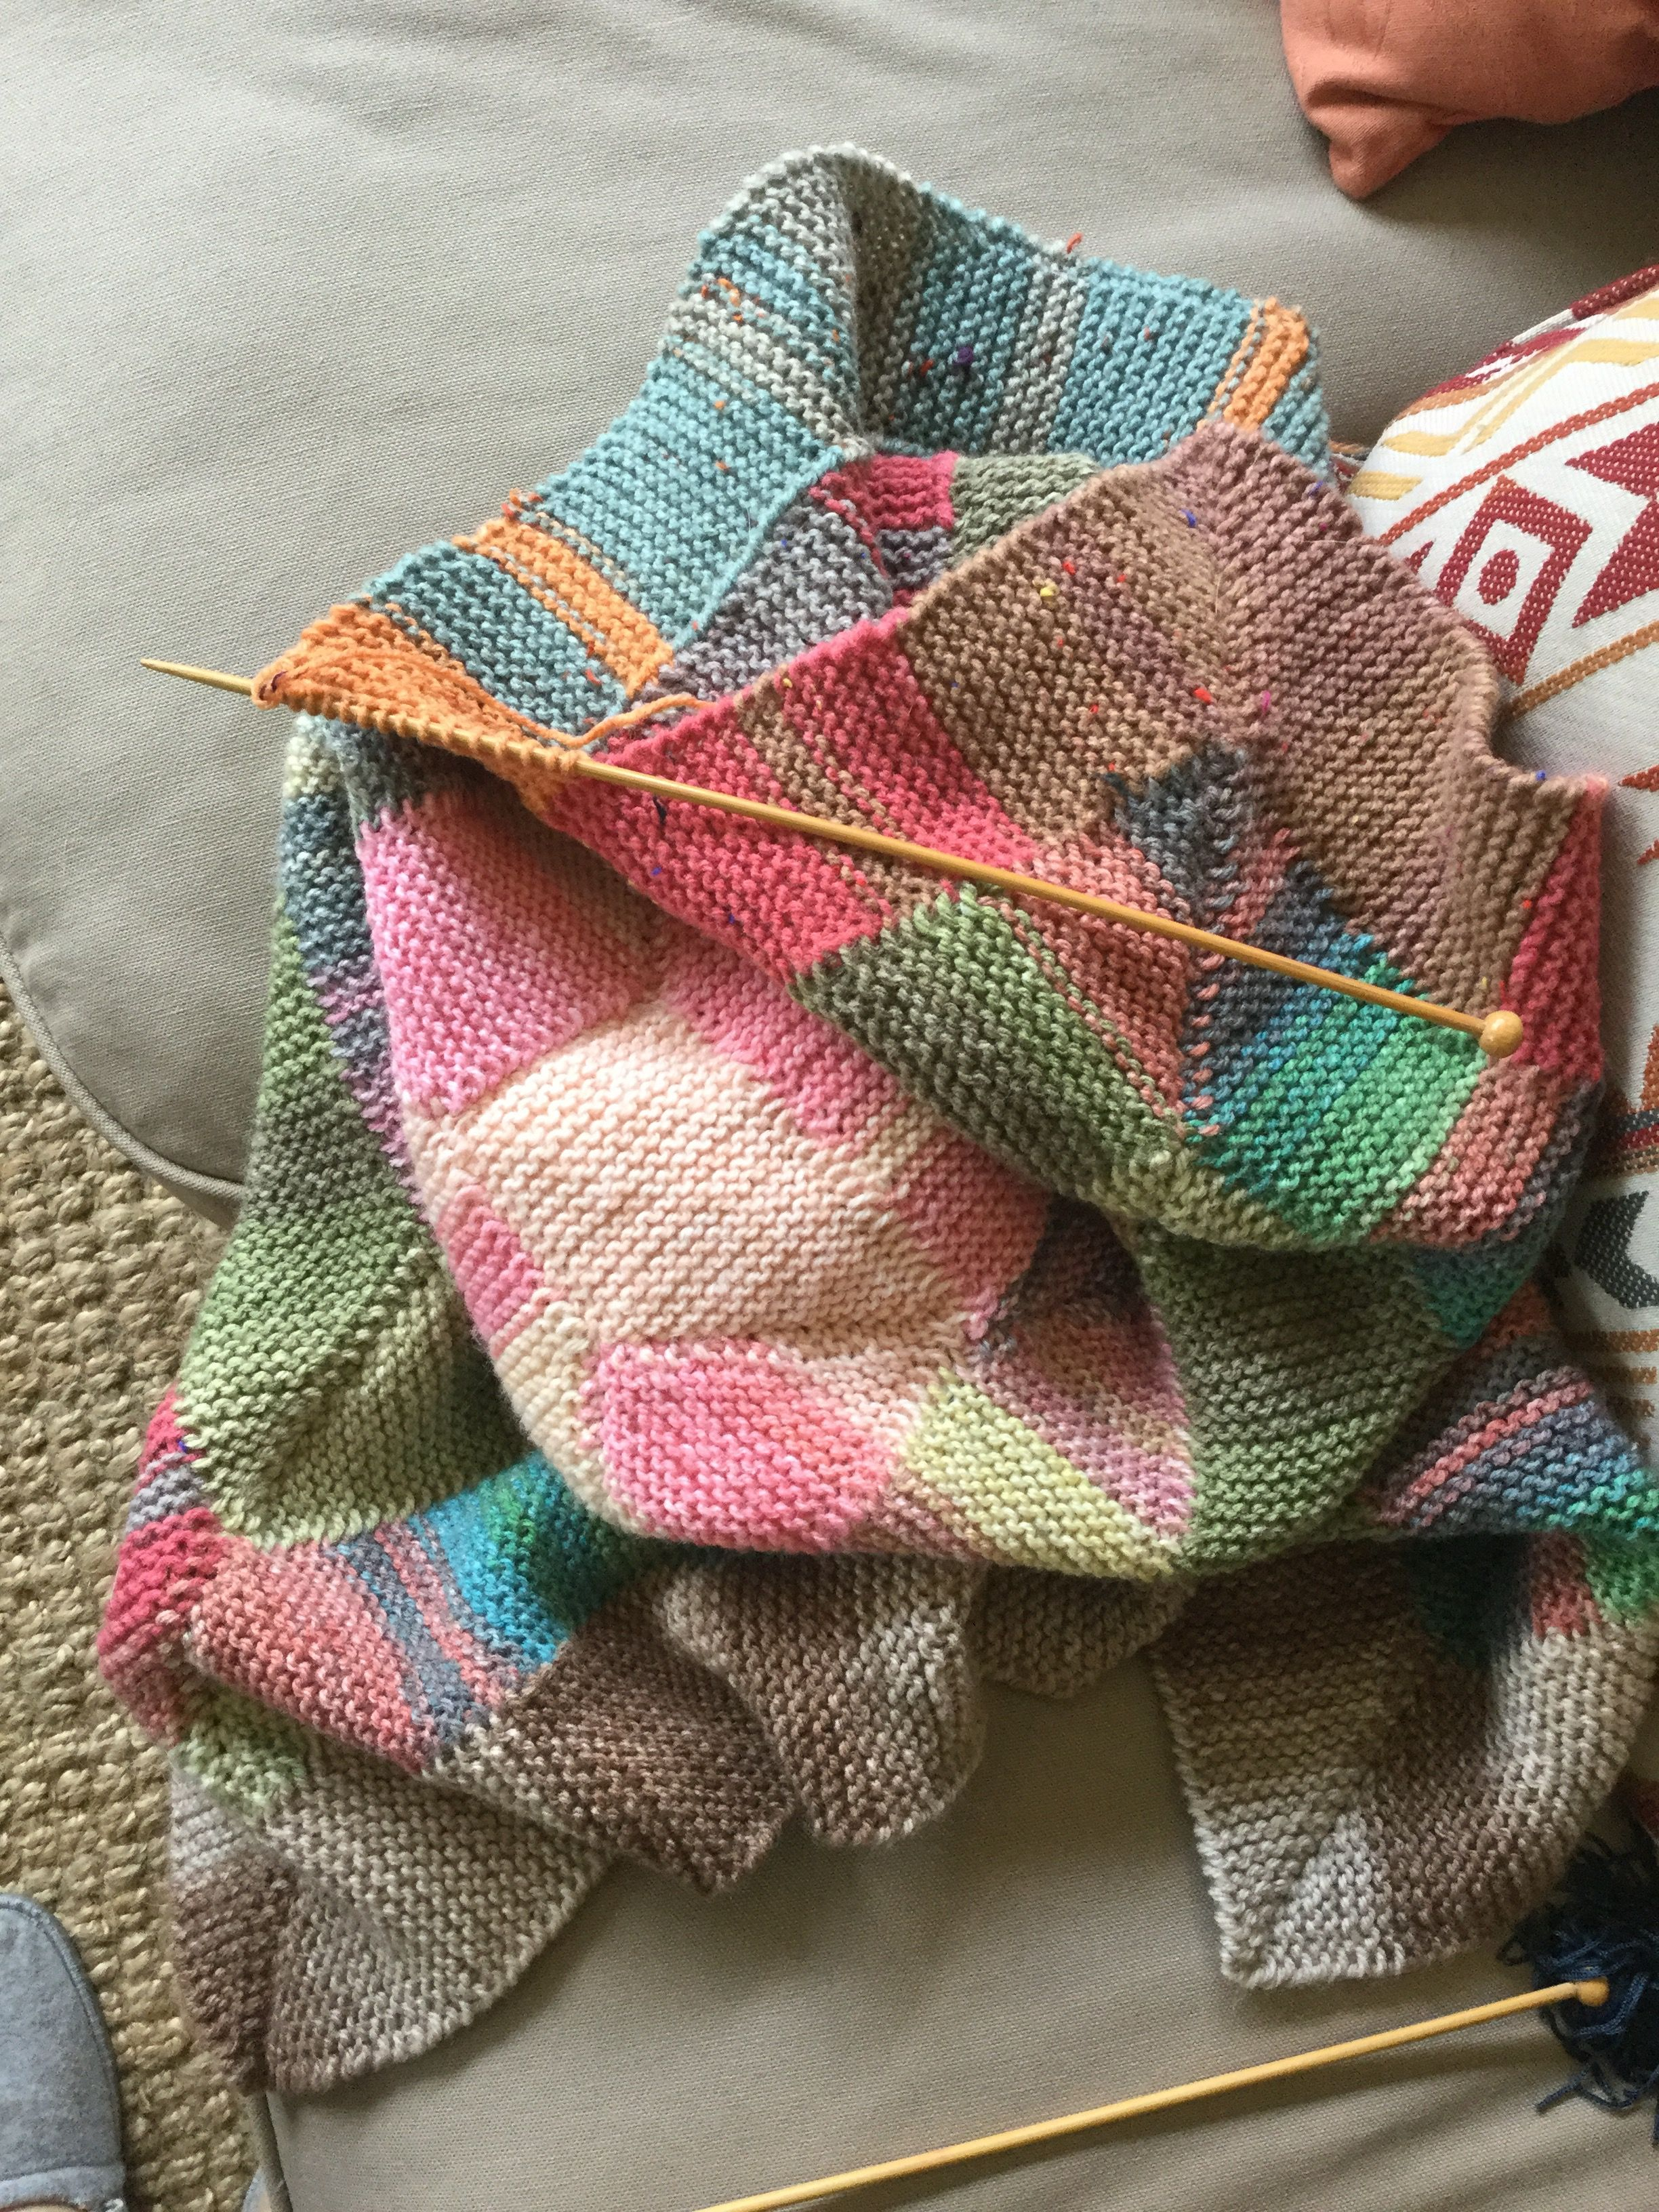 15 stitch knitting project with variegated yarns ...